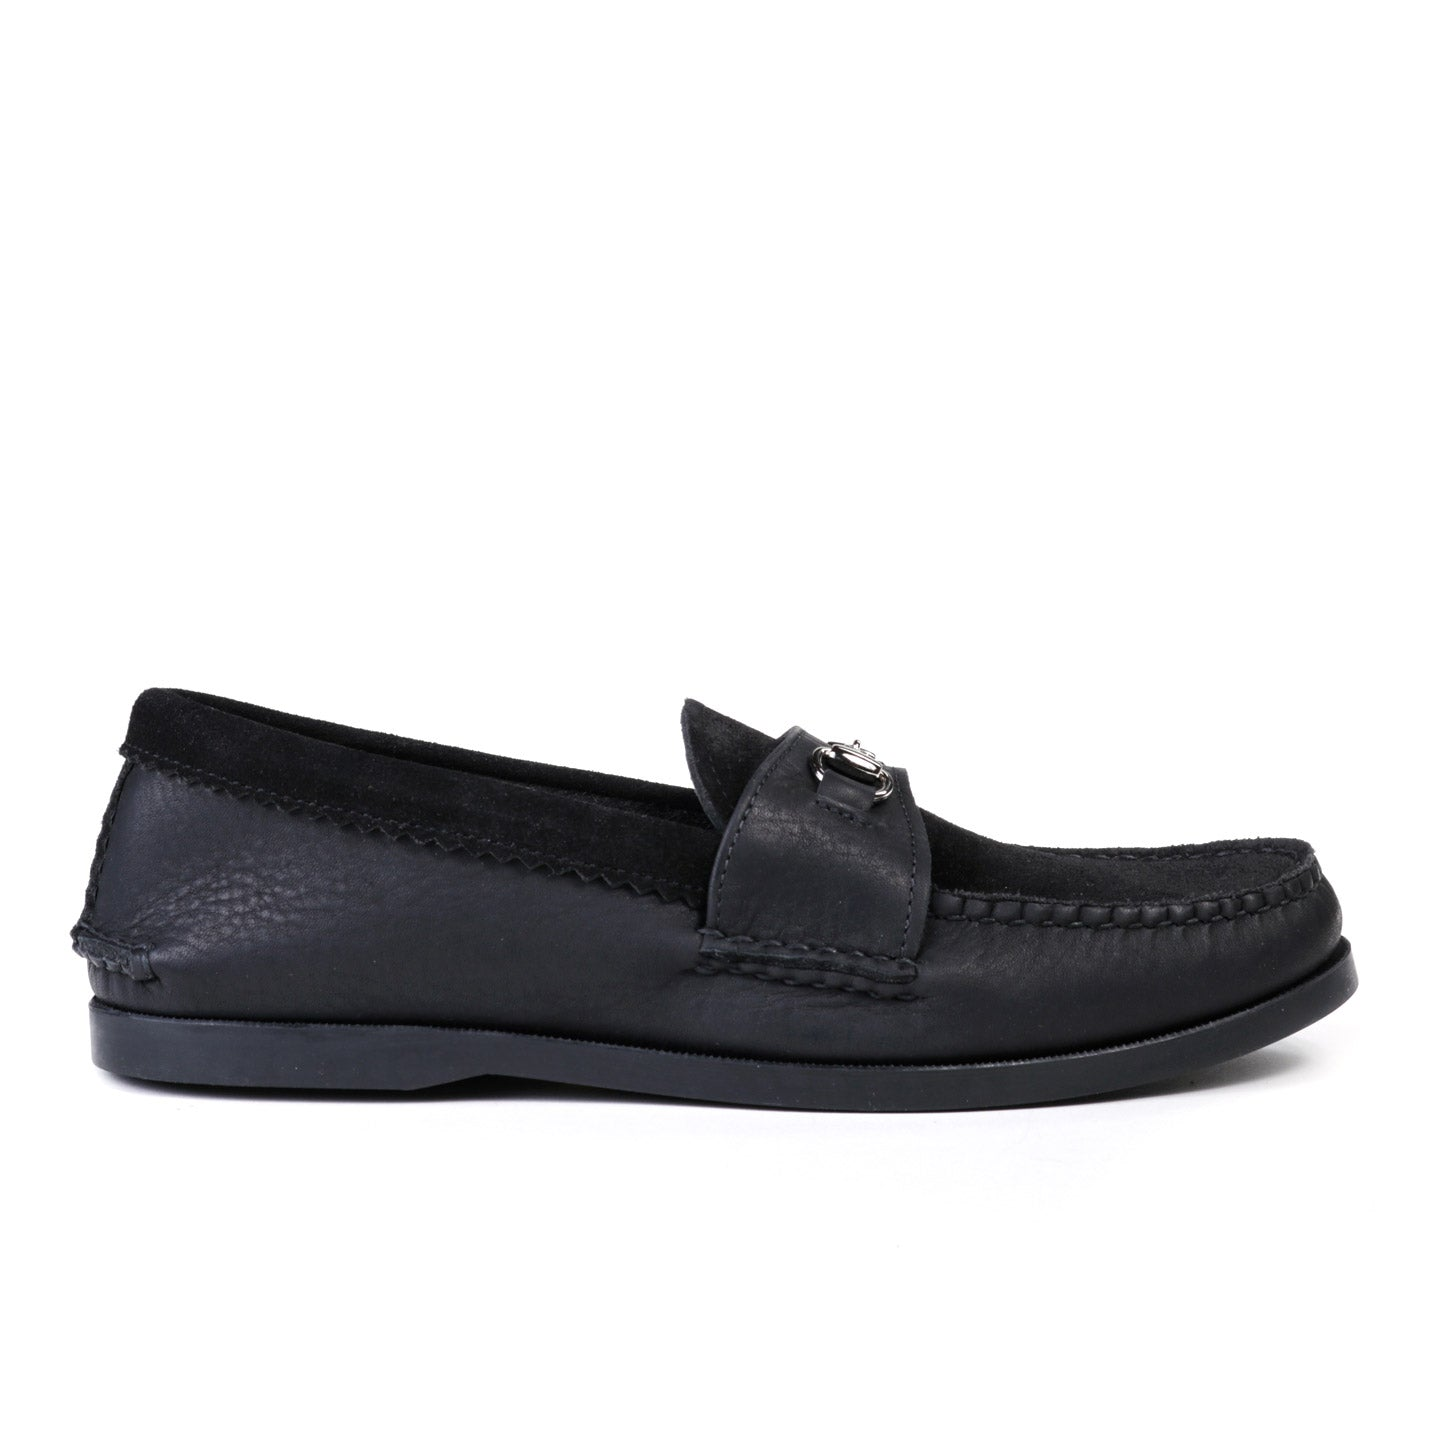 YUKETEN TODAY BIT LOAFER 2T BLACK